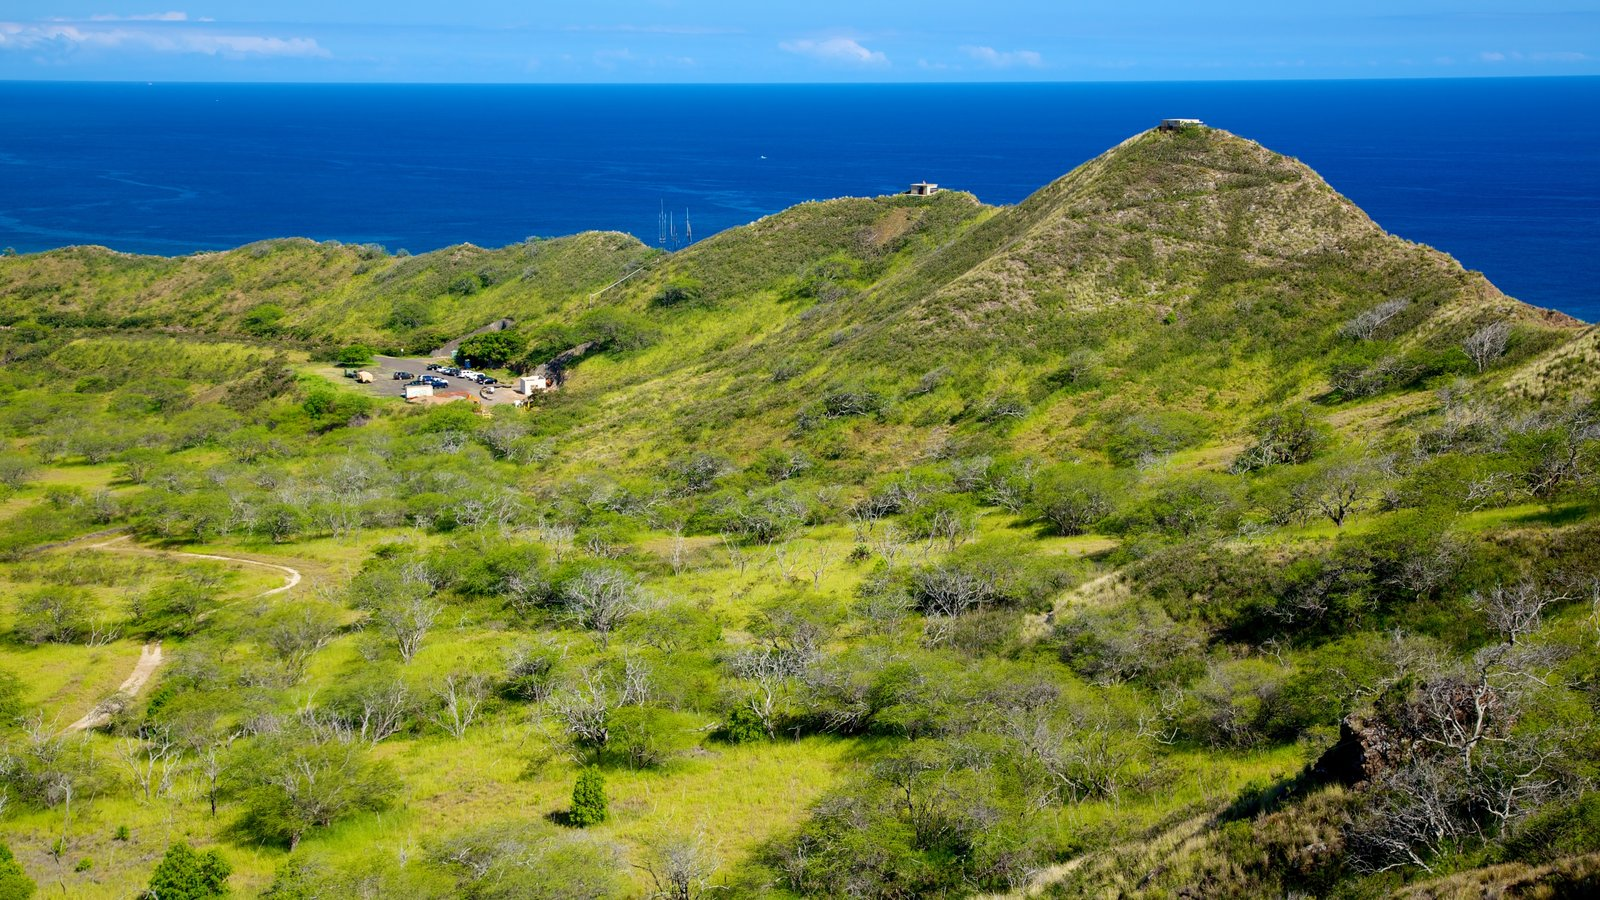 Oahu Island showing landscape views, tranquil scenes and general coastal views